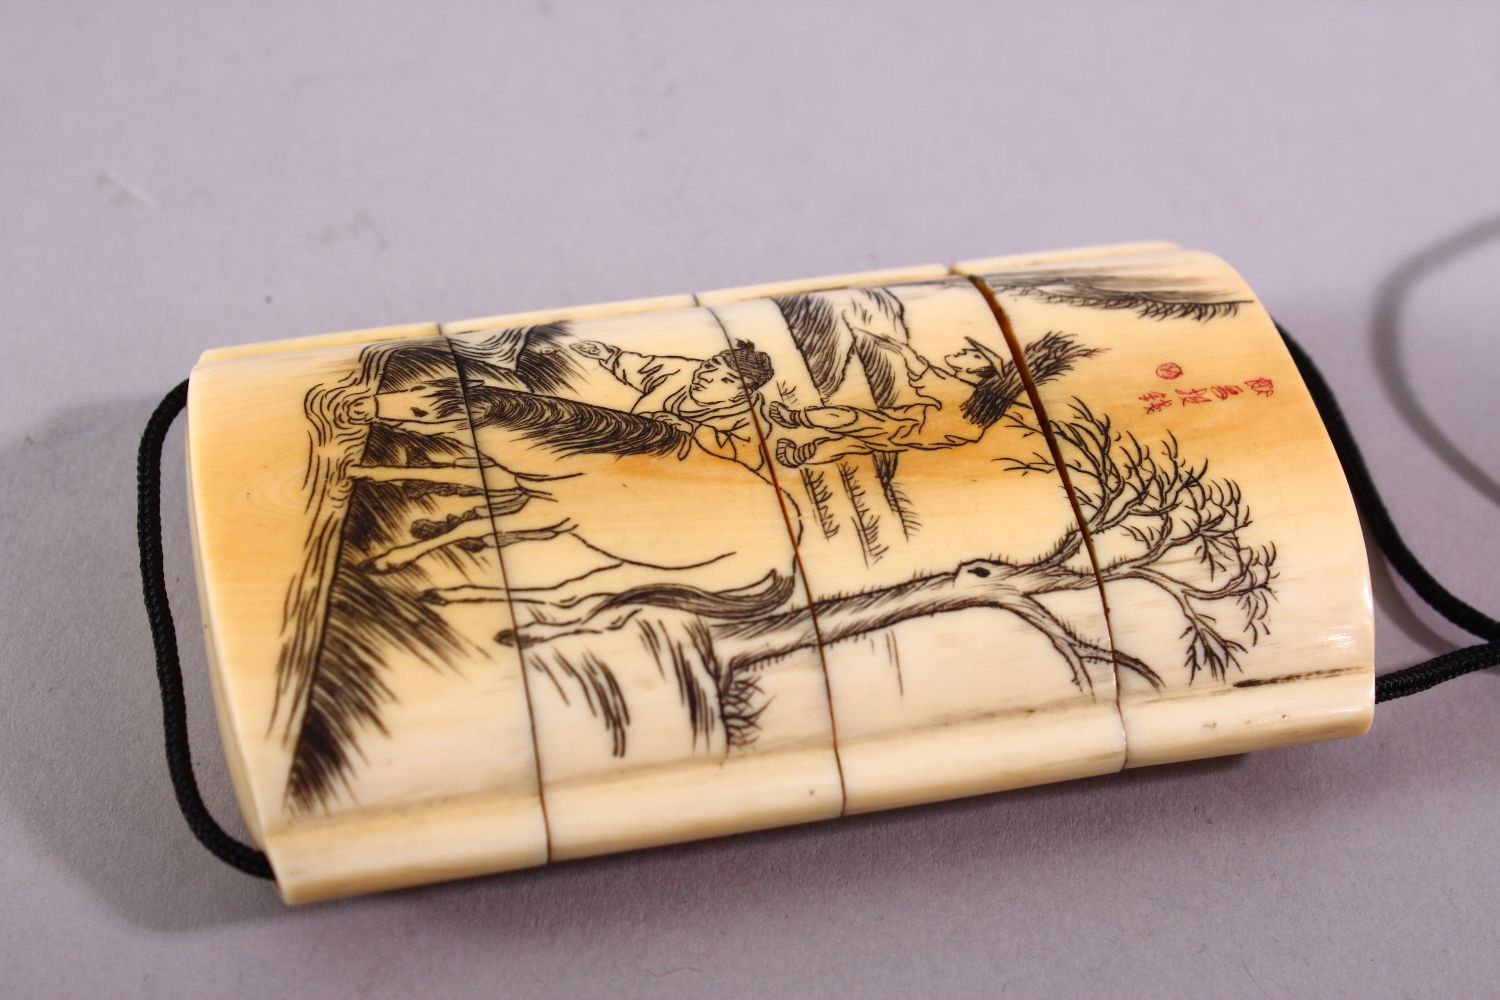 A JAPANESE MEIJI PERIOD CARVED IVORY THREE CASE INRO & NETSUKE, The inro carved with native - Image 5 of 7